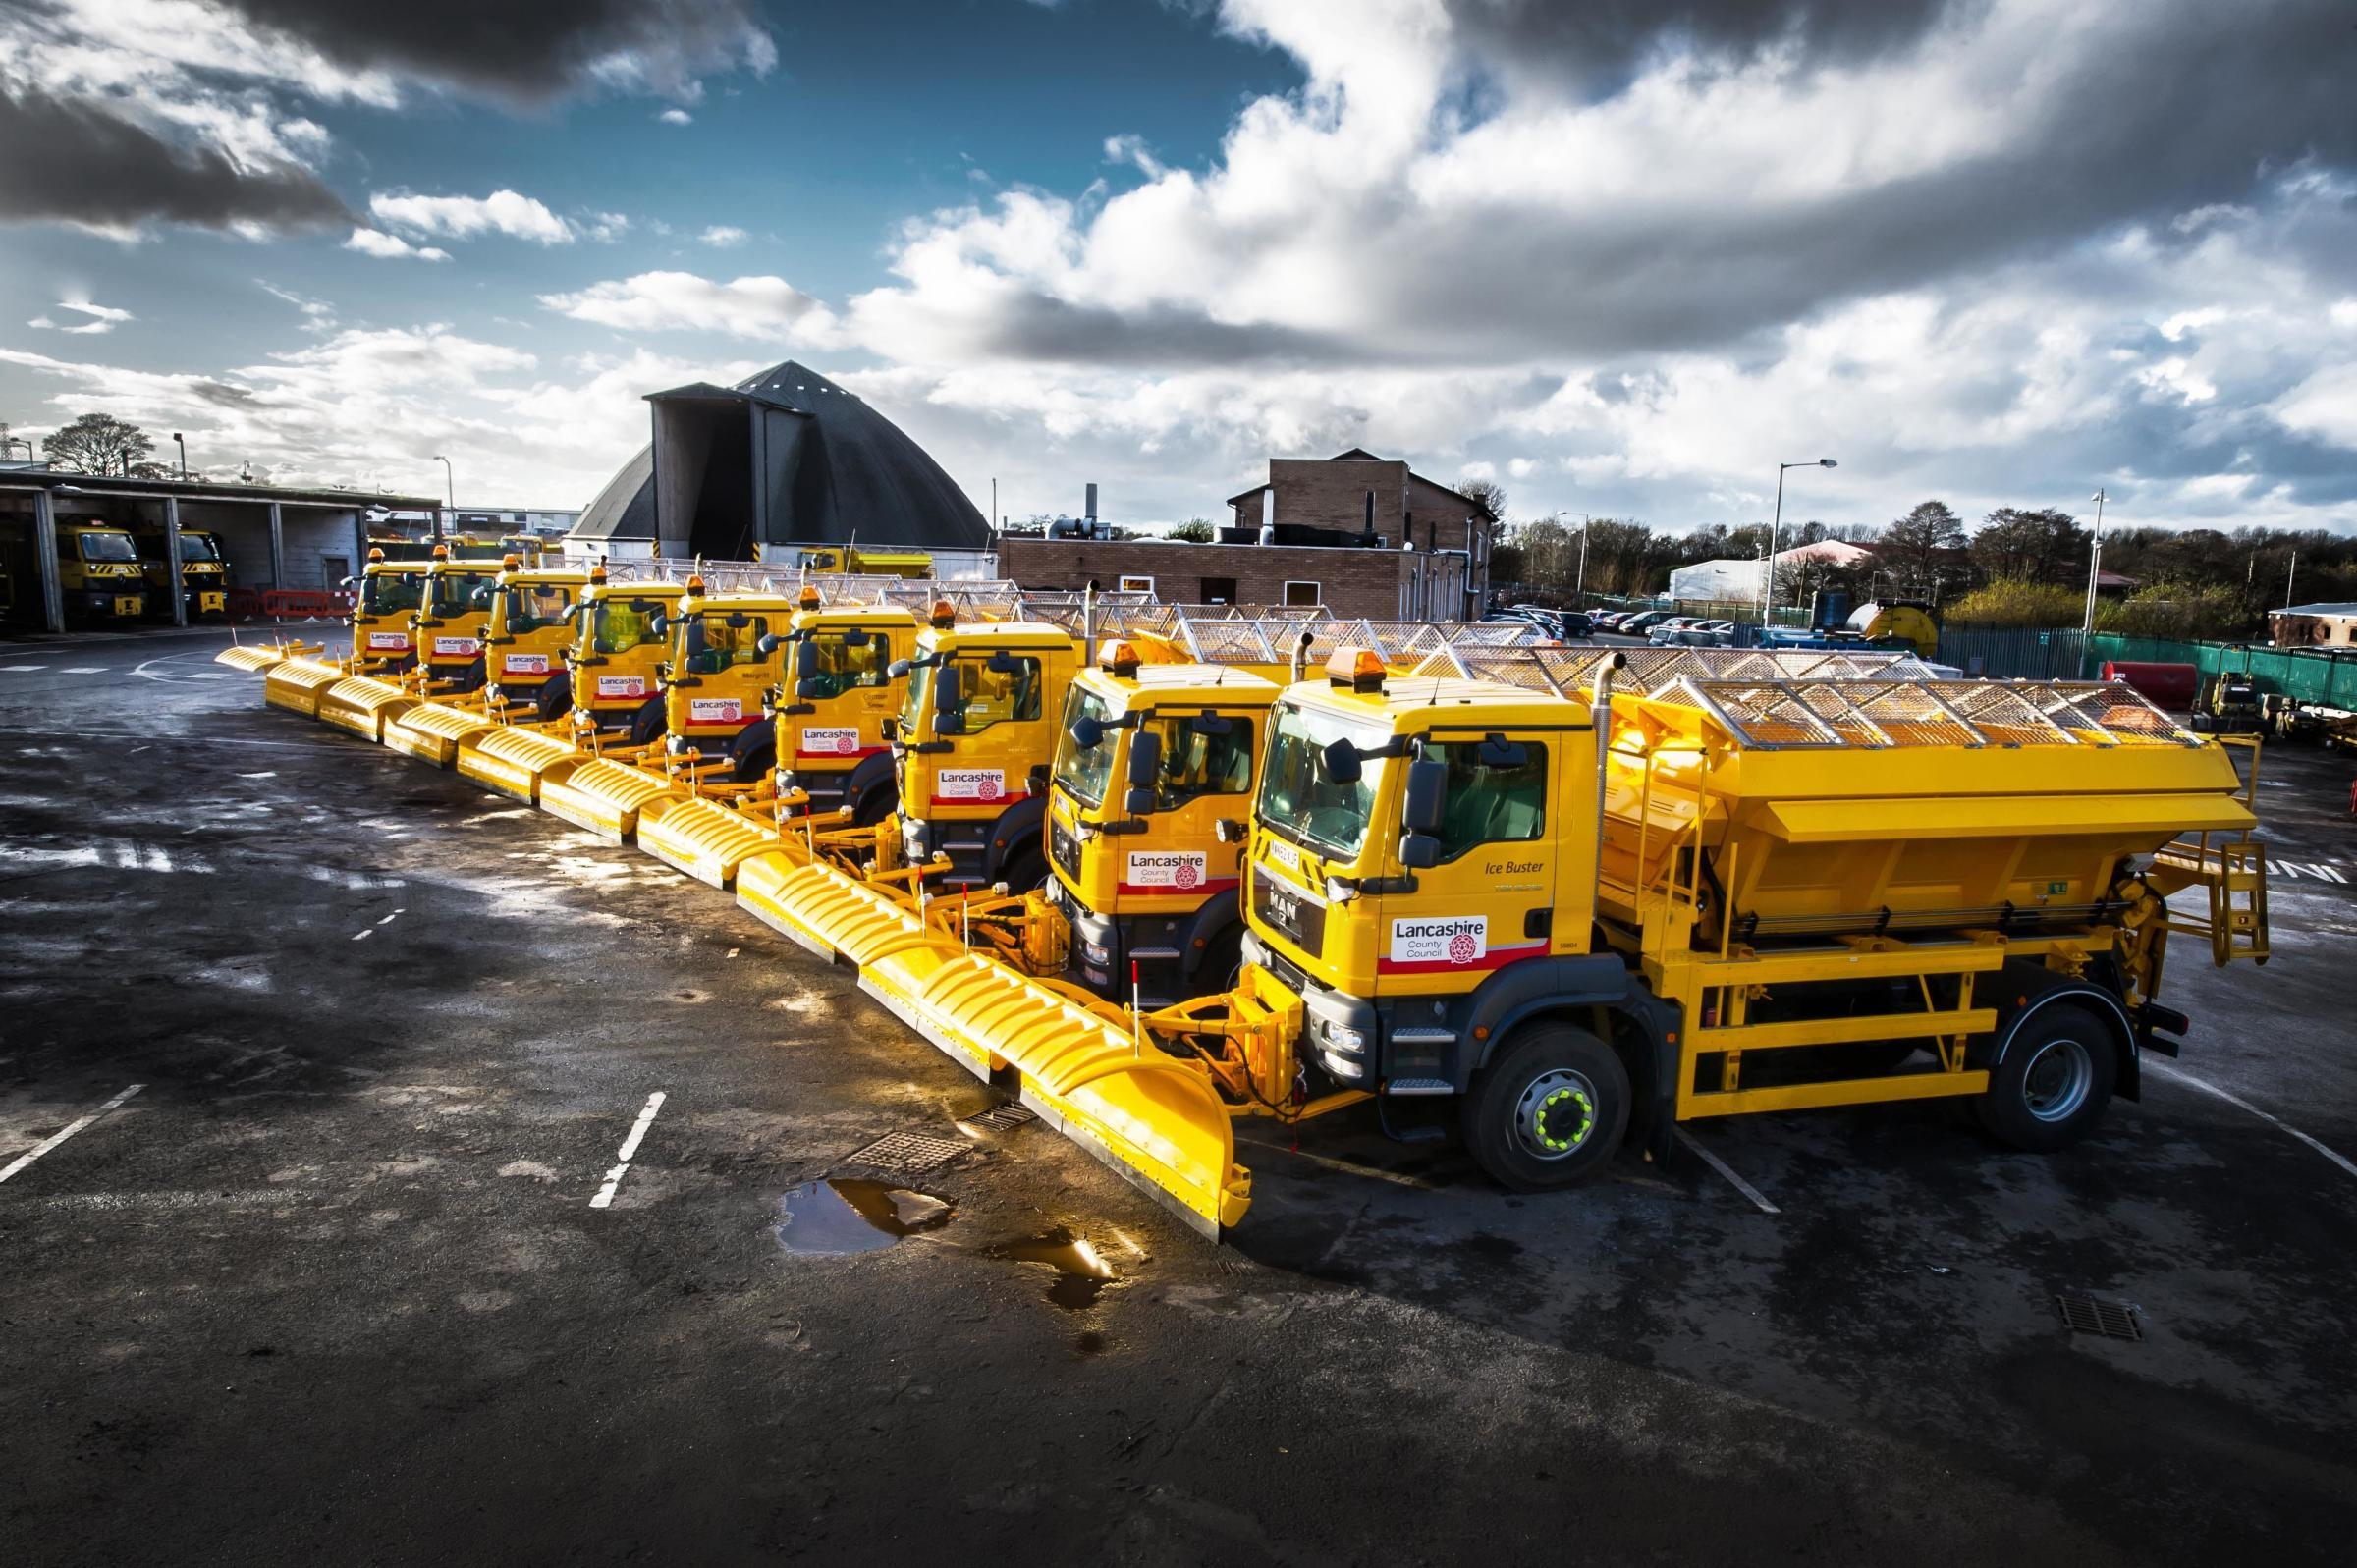 Gritters on the roads as weather turns cooler with frost predicted